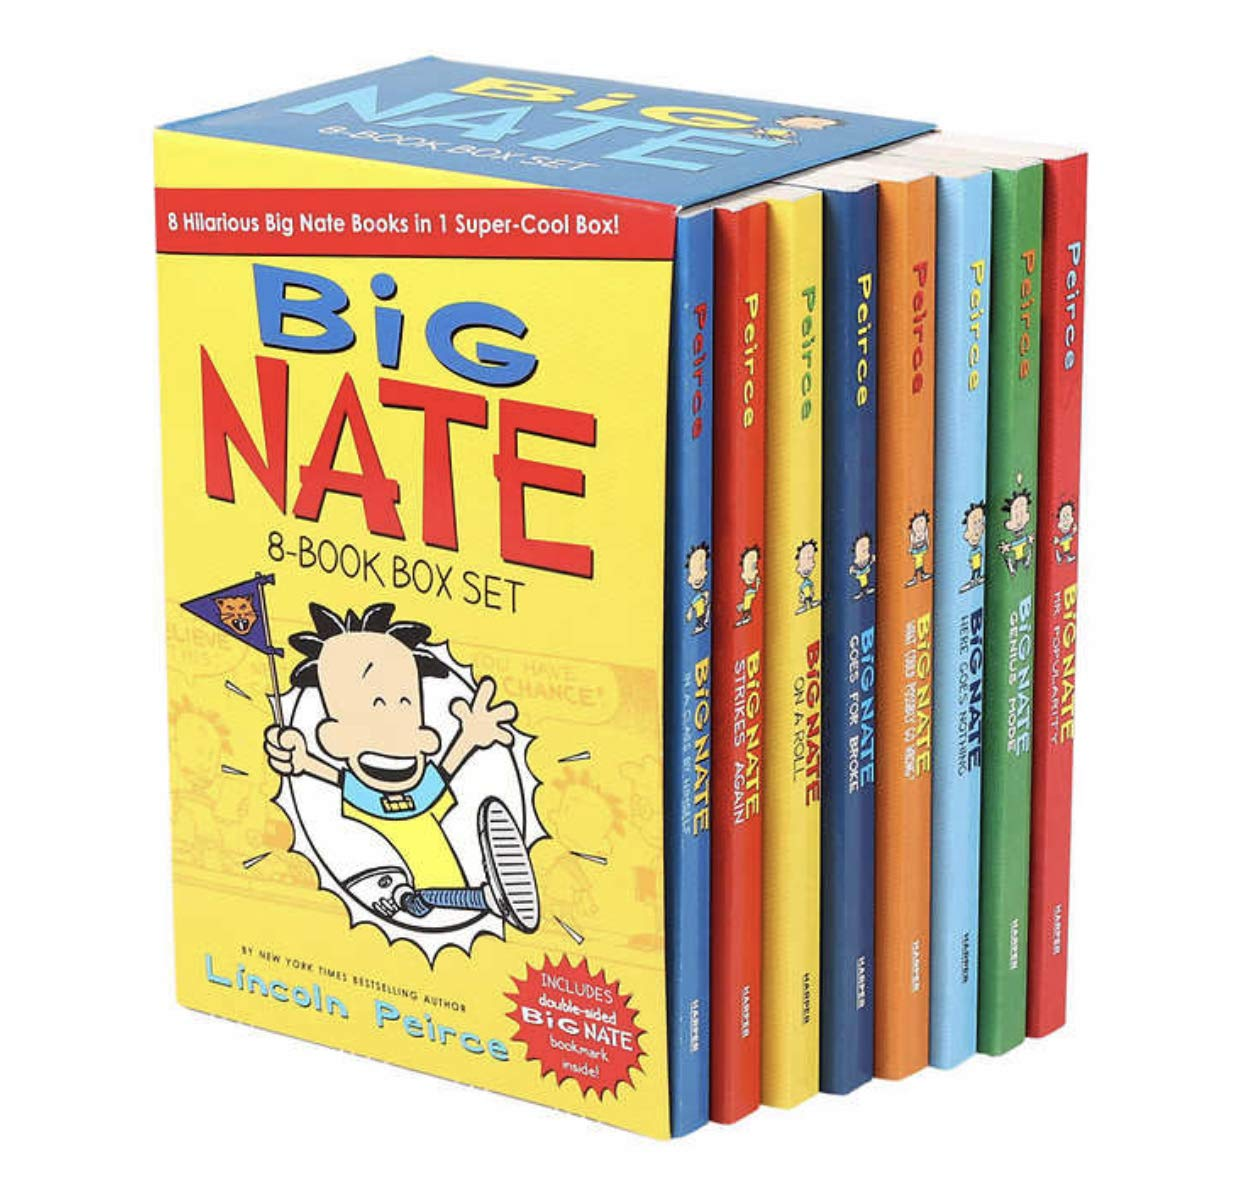 Big Nate Lincoln Peirce Series 8 Books Box Gift Set Includes Mr Popularity,Genius Mode, Here Goes Nothing,What Could Possibly go Wrong, Goes for Broke,On a Roll, Strikes Again,In a Class by Himself